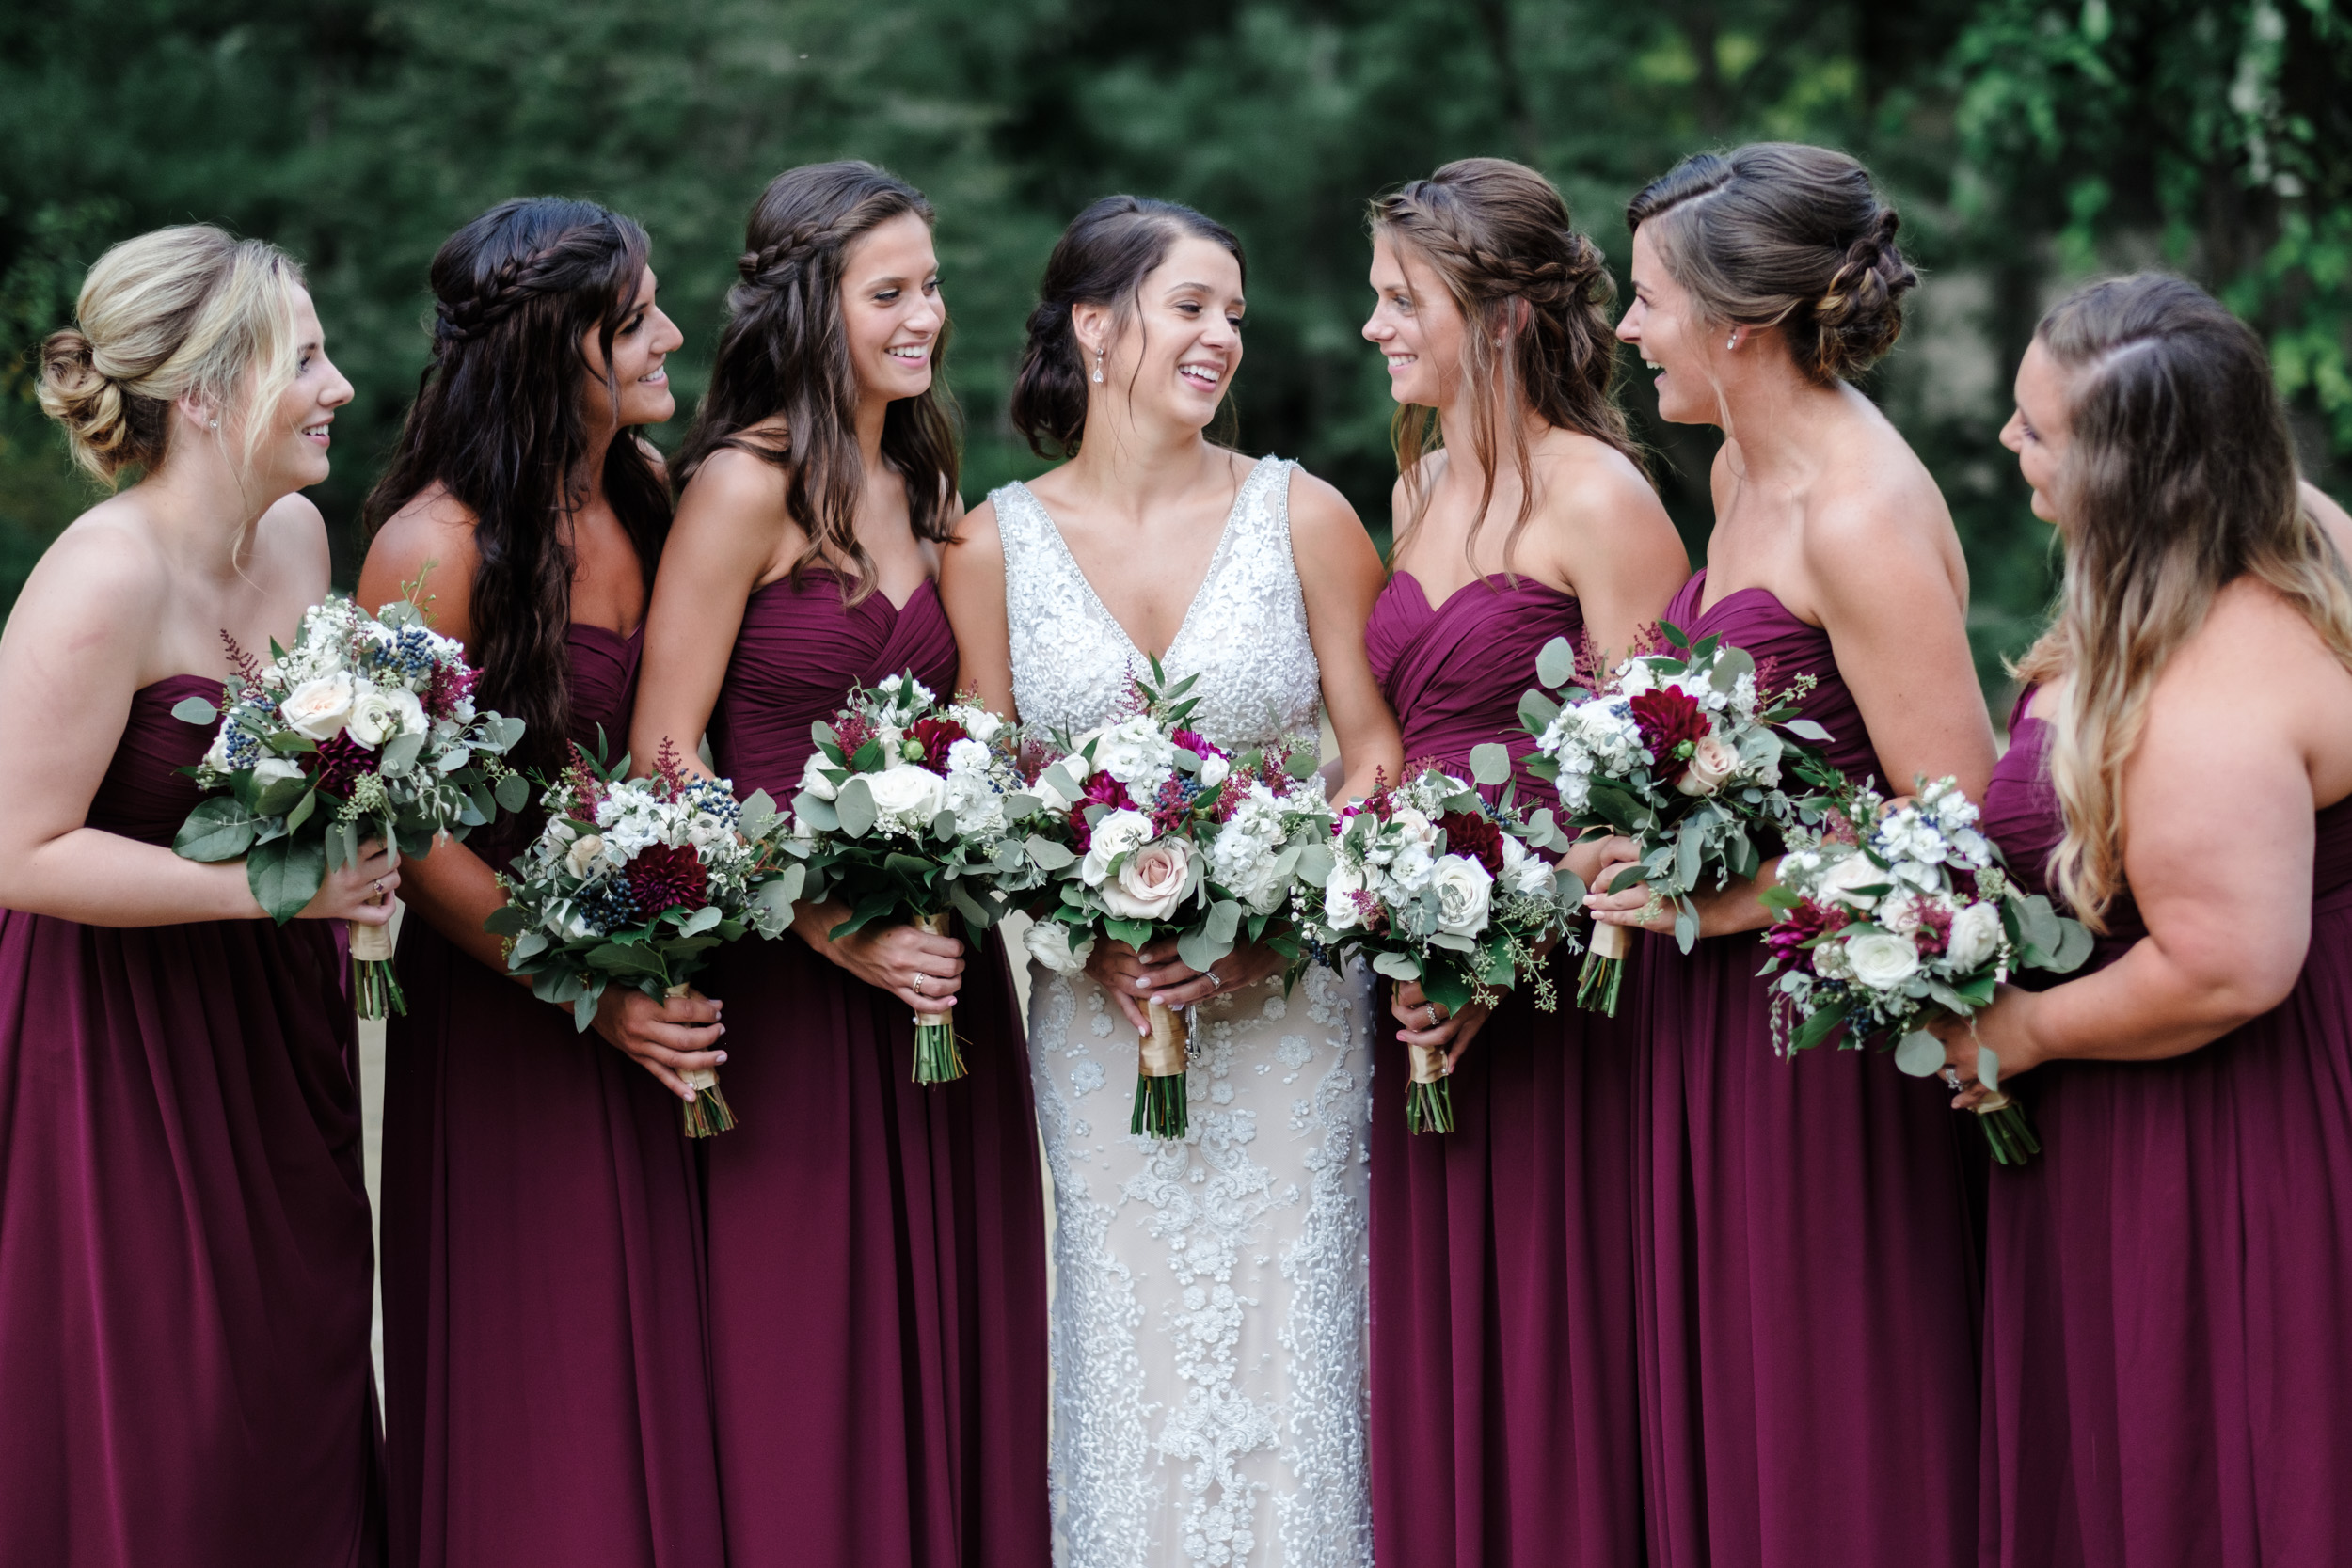 bride in white lace dress and brides maids in maroon dresses holding flowers while talking and laughing with eachother